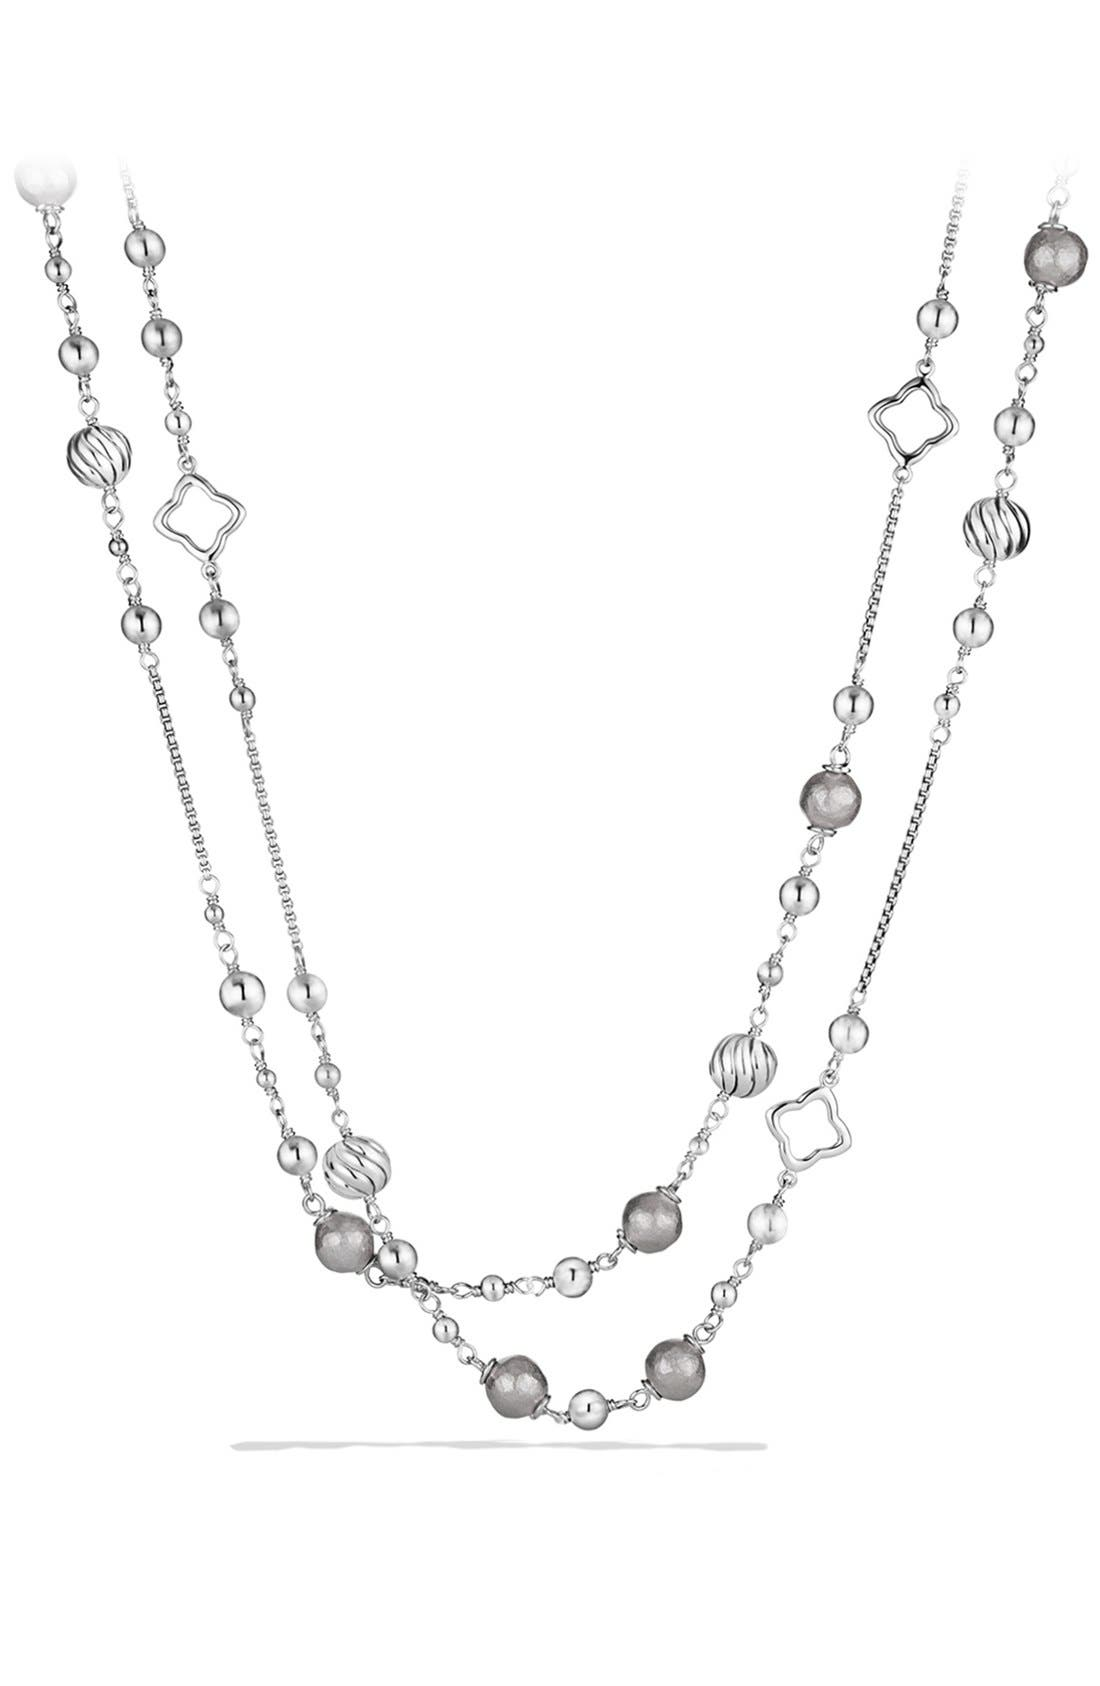 'DY Elements' Chain Necklace,                             Main thumbnail 1, color,                             SILVER